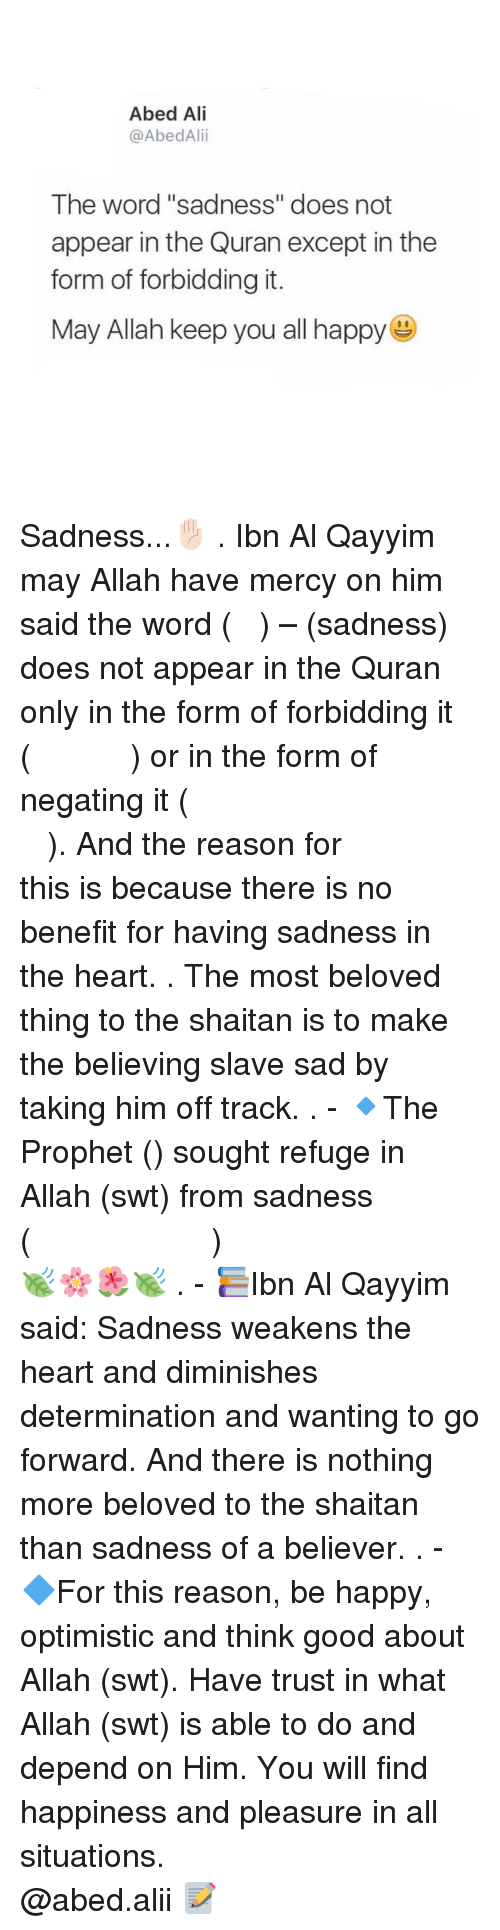 """Optimisticly: Abed Ali  @AbedAlii  The word """"sadness"""" does not  appear in the Quran except in the  form of forbidding it.  May Allah keep you all happy Sadness...✋🏻 . Ibn Al Qayyim may Allah have mercy on him said the word (الحزن) – (sadness) does not appear in the Quran only in the form of forbidding it (ولا تهنو ولاتحزنوا) or in the form of negating it (فلاخوف عليهم ولا هم يحزنون). And the reason for this is because there is no benefit for having sadness in the heart. . The most beloved thing to the shaitan is to make the believing slave sad by taking him off track. . - 🔹The Prophet (ﷺ) sought refuge in Allah (swt) from sadness (اللهم إني أعوذ بك من الهم والحزن)🍃🌸🌺🍃 . - 📚Ibn Al Qayyim said: Sadness weakens the heart and diminishes determination and wanting to go forward. And there is nothing more beloved to the shaitan than sadness of a believer. . - 🔷For this reason, be happy, optimistic and think good about Allah (swt). Have trust in what Allah (swt) is able to do and depend on Him. You will find happiness and pleasure in all situations. ▃▃▃▃▃▃▃▃▃▃▃▃▃▃▃▃▃▃▃▃ @abed.alii 📝"""